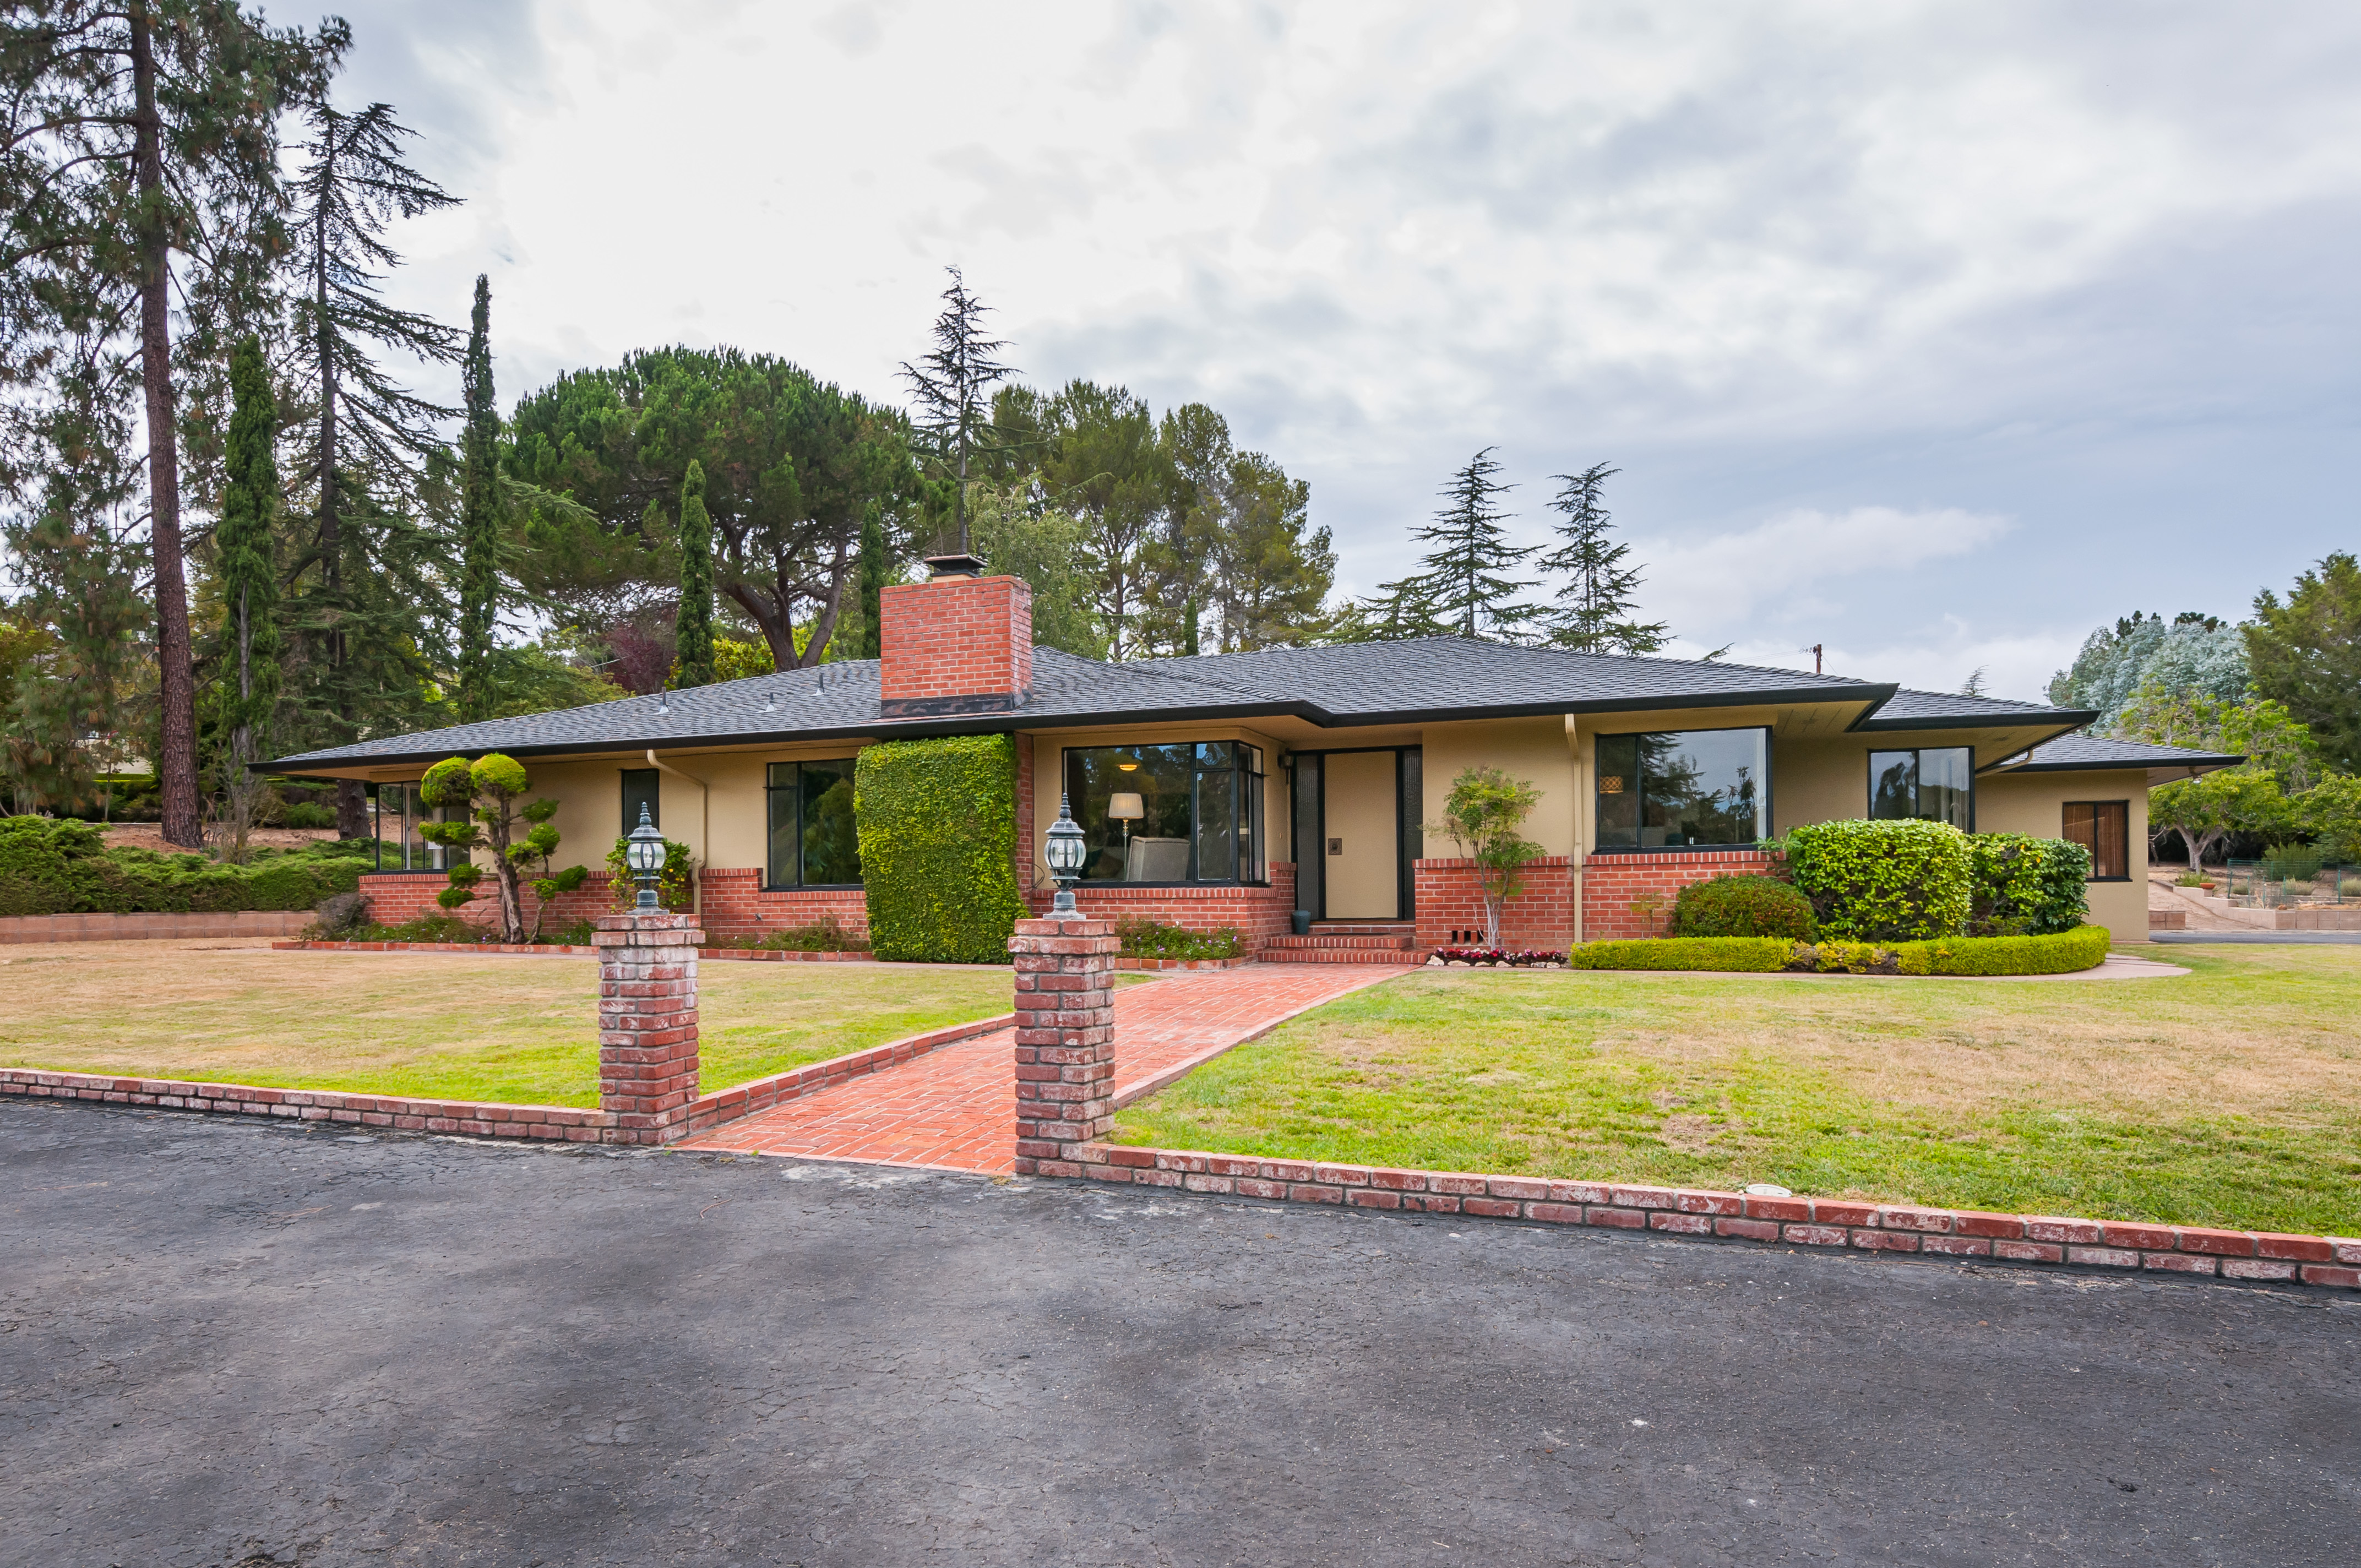 130 Normandy Ln, Woodside, CA 94062